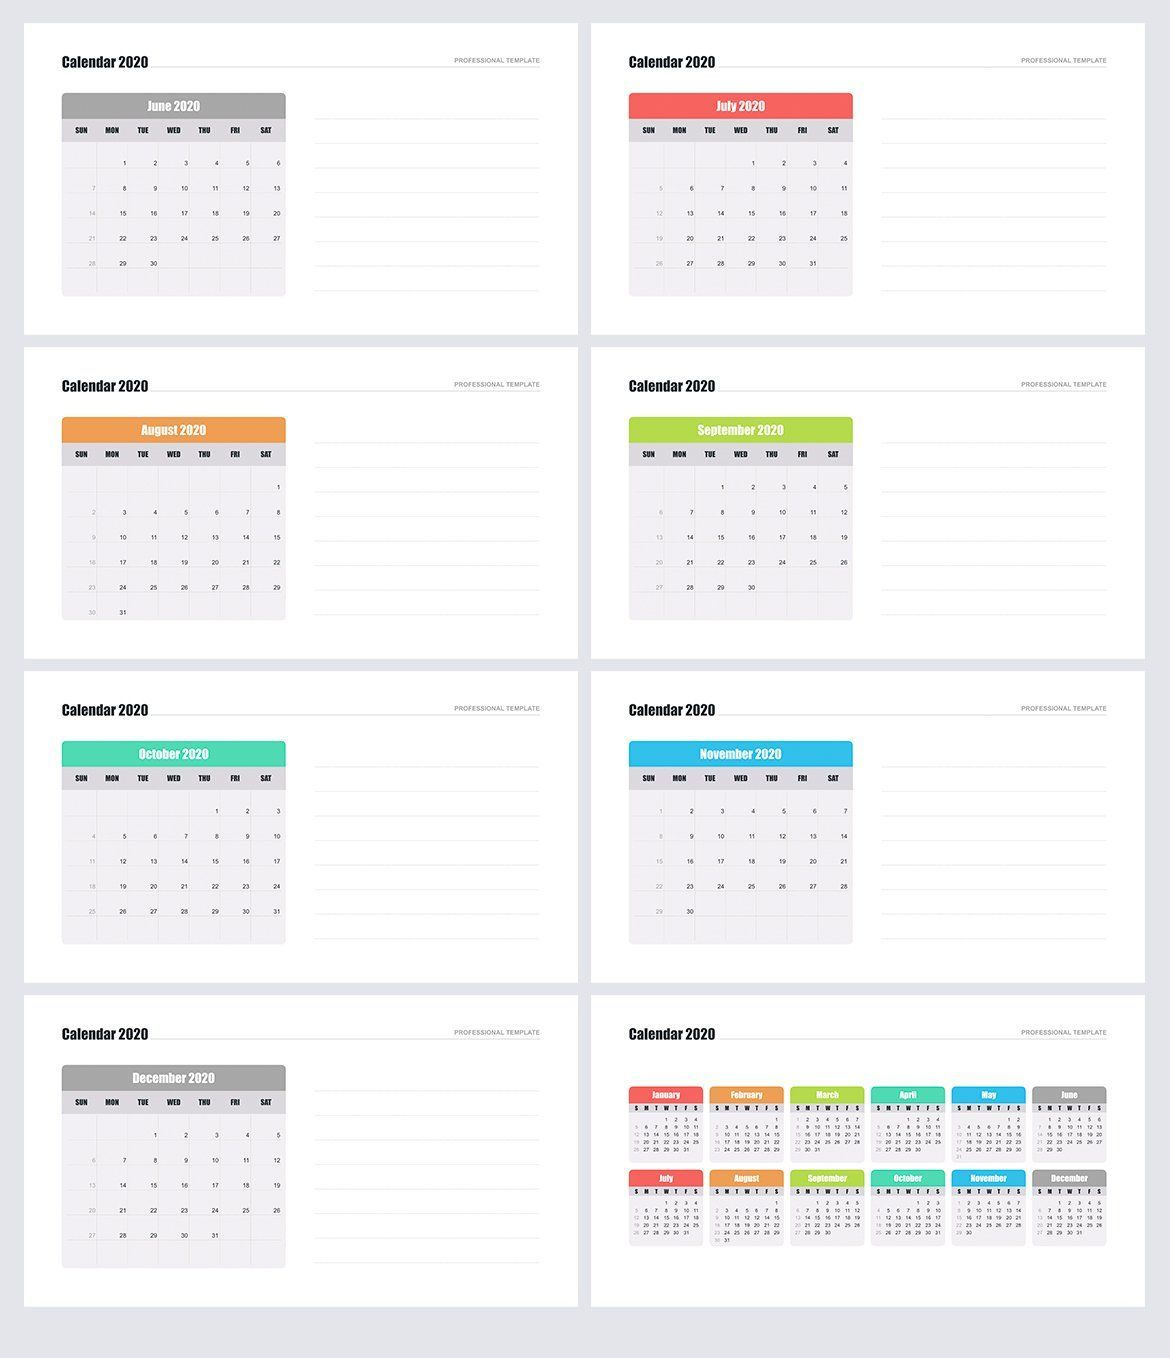 Calendar 2020 For Powerpoint Ad Files Pptx Ppt Support Ad